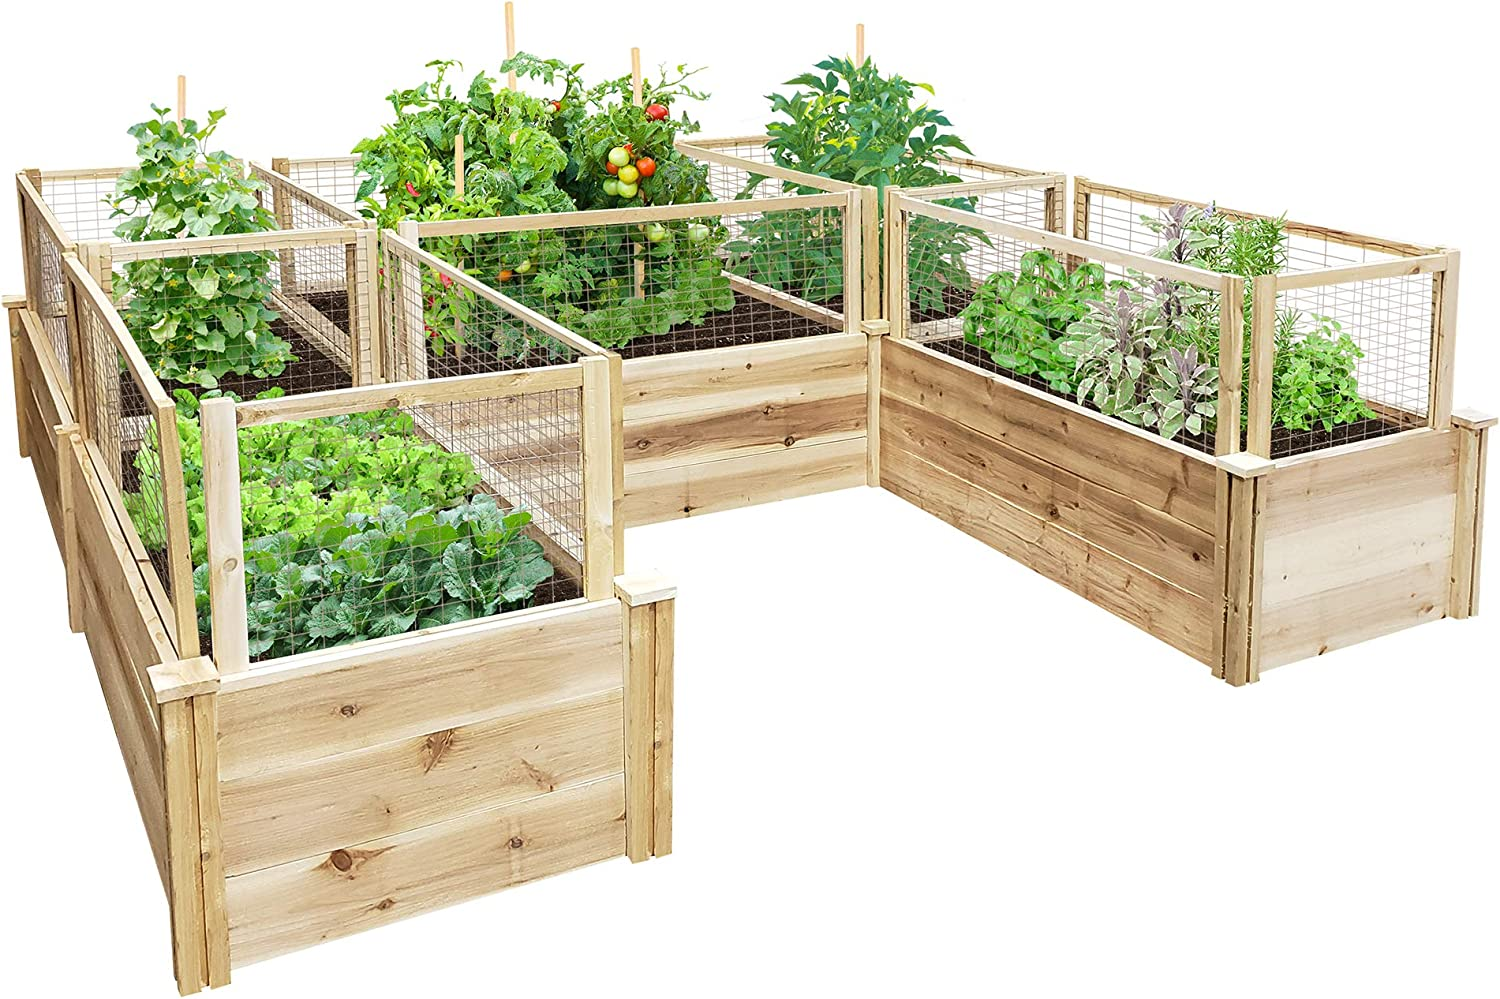 Greenes Fence Premium Cedar Raised Garden Bed U-Shaped Bed